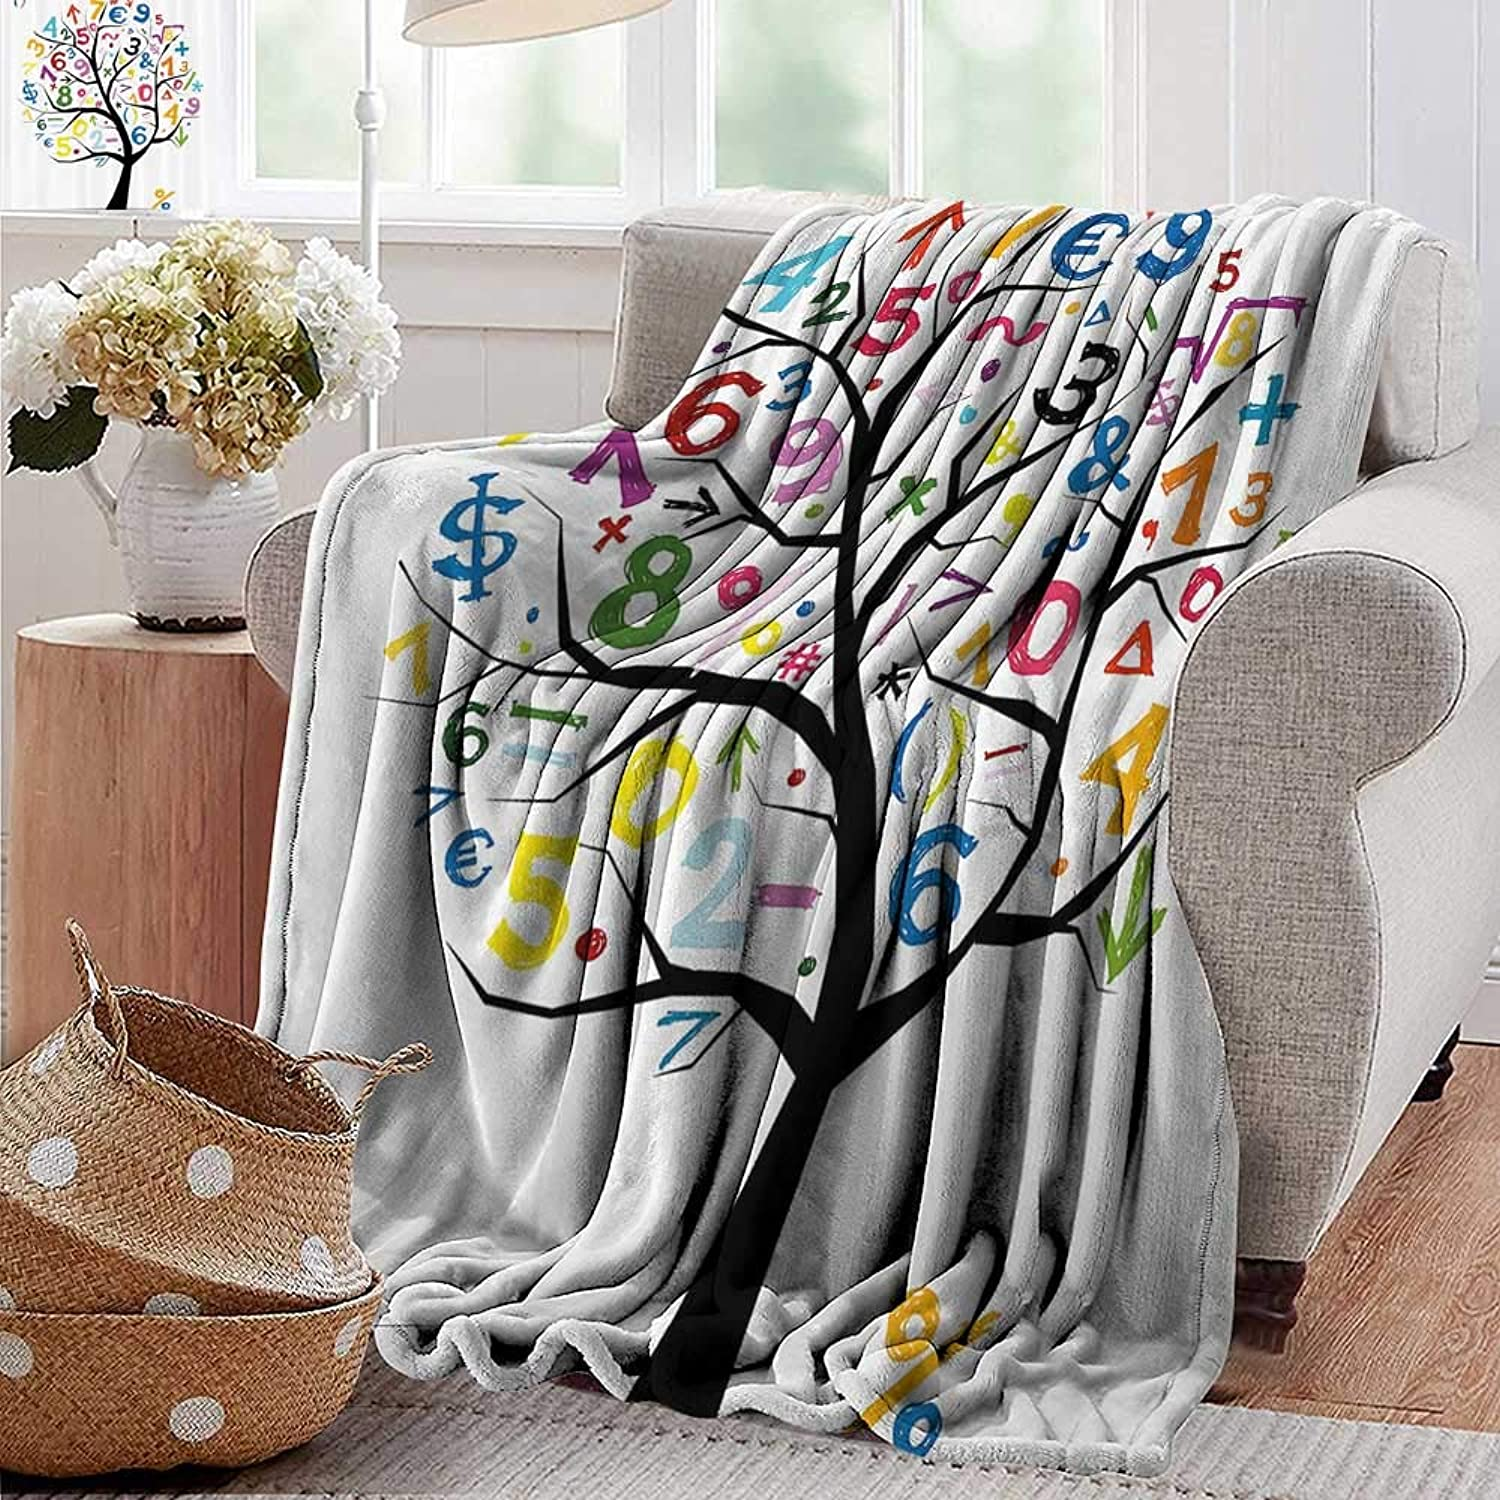 PearlRolan Velvet Touch Ultra Plush,Mathematics Classroom Decor,Art Tree with colorful Numbers Math Symbols Fun Kids Drawing,Multicolor,300GSM,Super Soft and Warm,Durable Throw Blanket 35 x60